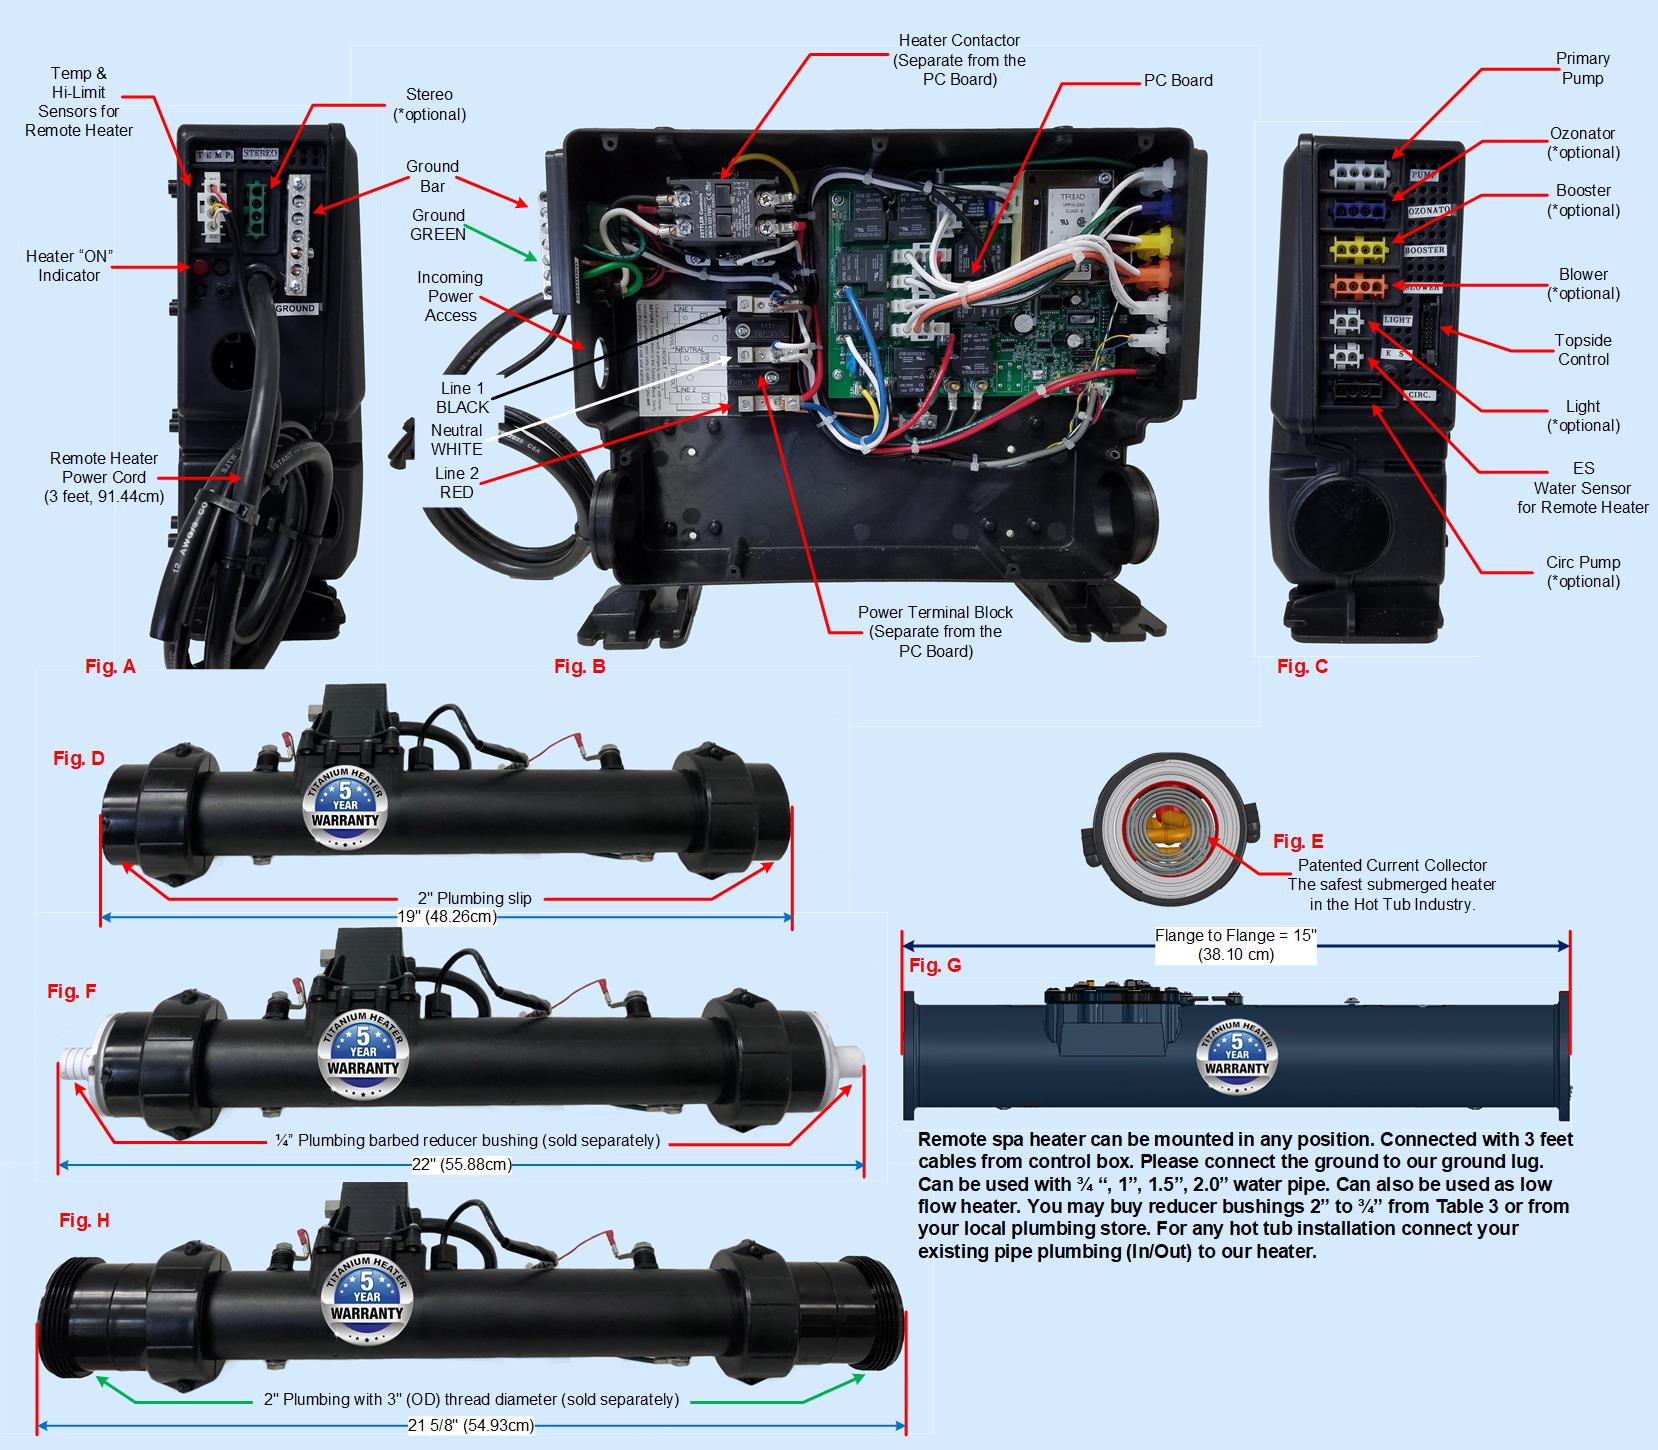 Universal Spa Control Connections